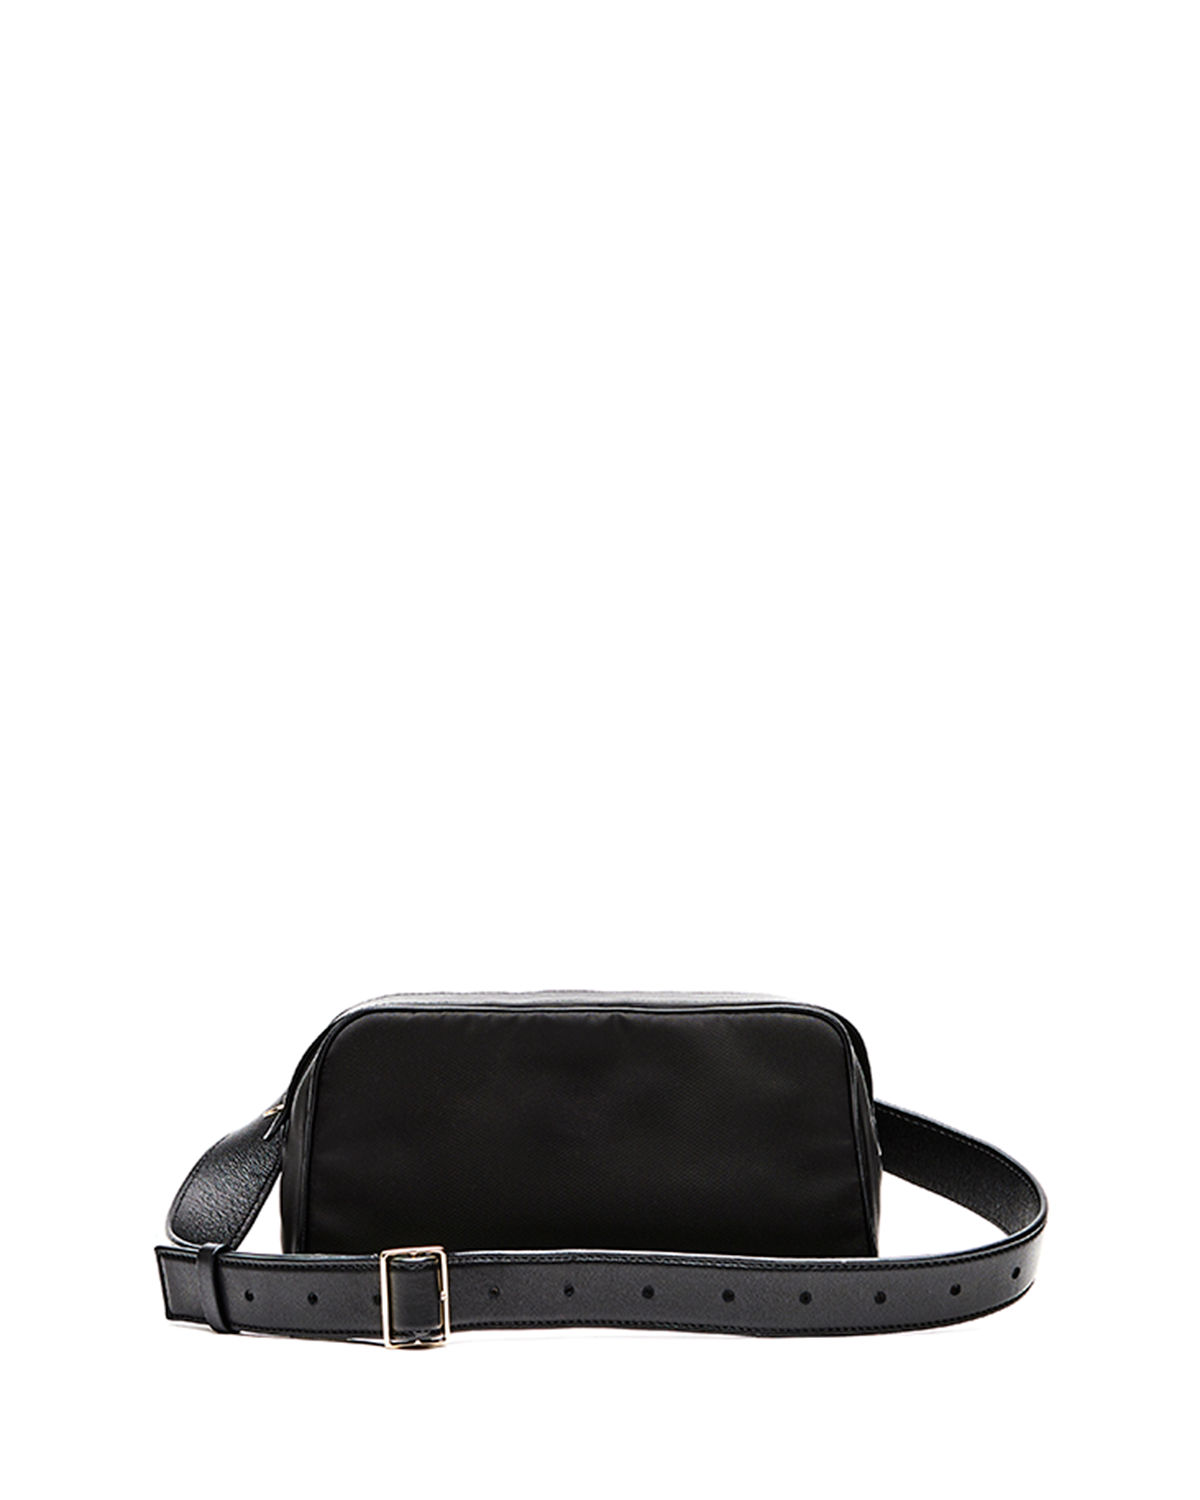 The Row Puffy Nylon Convertible Fanny Pack Bag Neiman Marcus